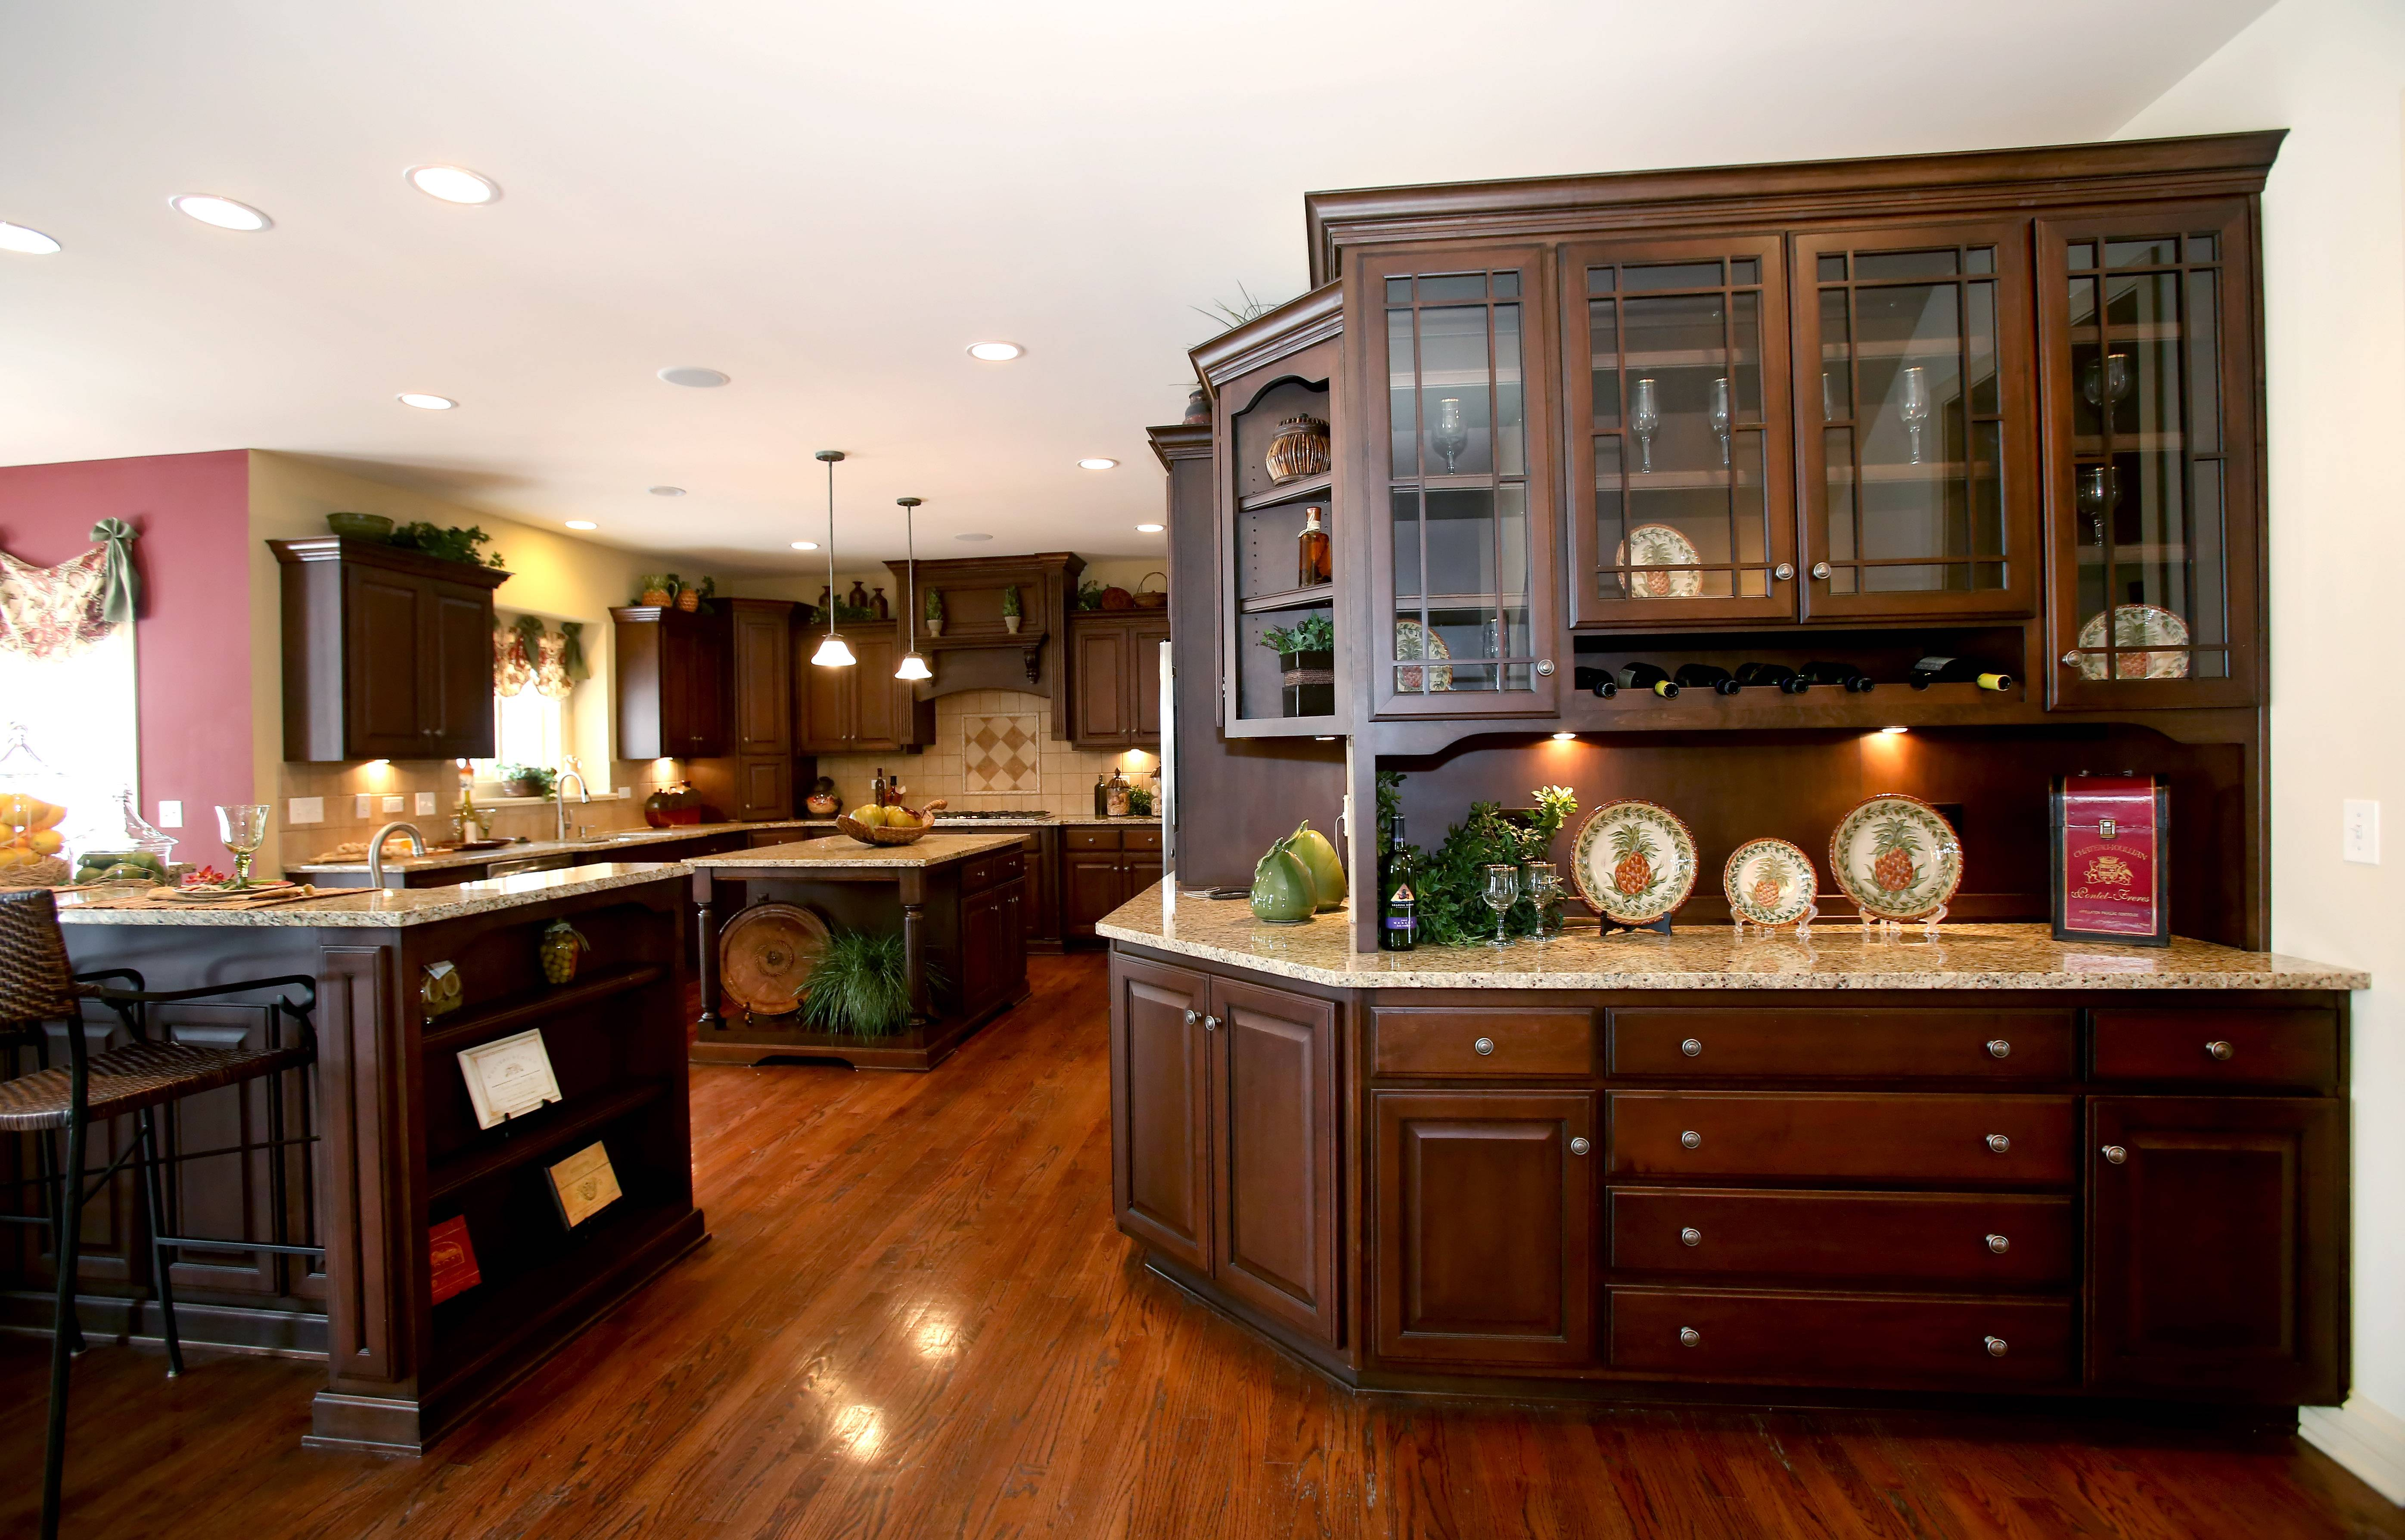 Overstreet Builders has not one, but two kitchen islands in its Castleby model at the Fairways of Augusta Village, in Bolingbrook.